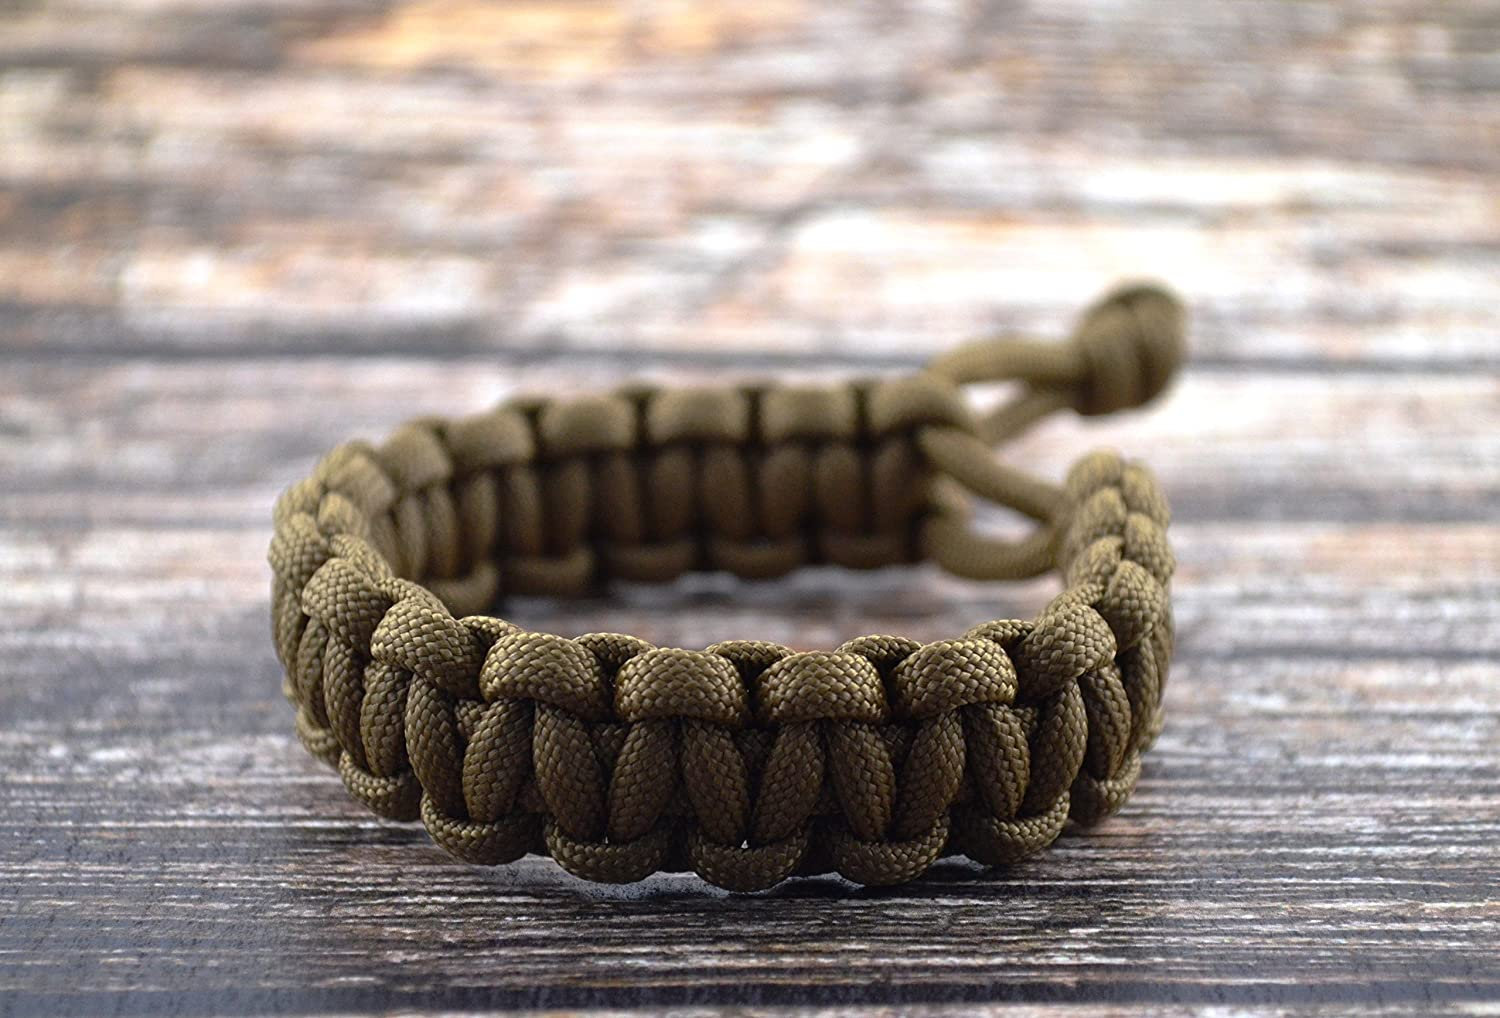 Mad Max Fury Road Tom Hardy Paracord Adjustable Survival Bracelet - COYOTE  BROWN - Size 8